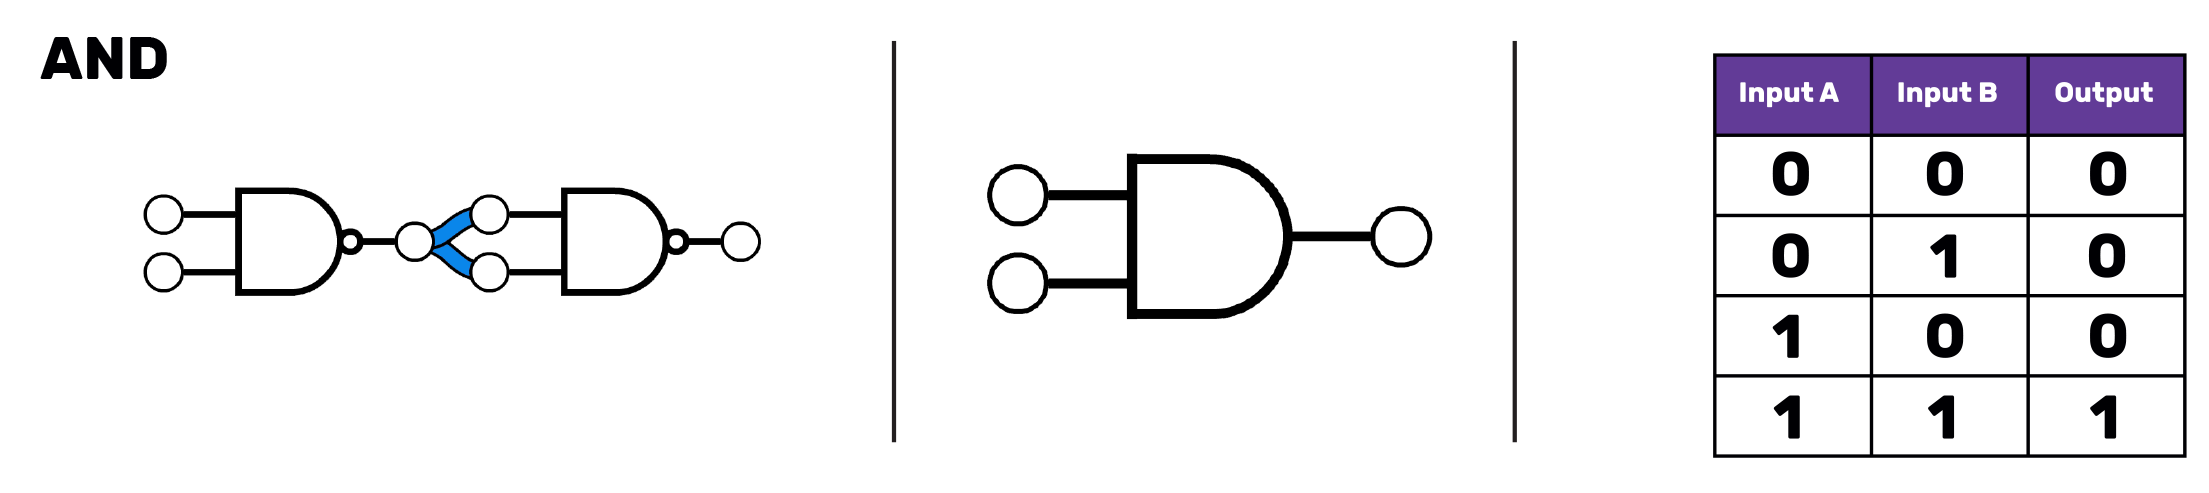 "On the left, two NAND gates with the output from the first gate connected to the input of the second gate. In the middle, an AND gate symbol with is the same as the NAND gate symbol except it does not have the small circle.  On the right, a truth table with three columns, labelled ""Input A"", ""Input B"" and ""Output"". The first row reads 0 0 0, the second 1 0 0. The third row reads 0 1 0 and the final row 1 1 1)."